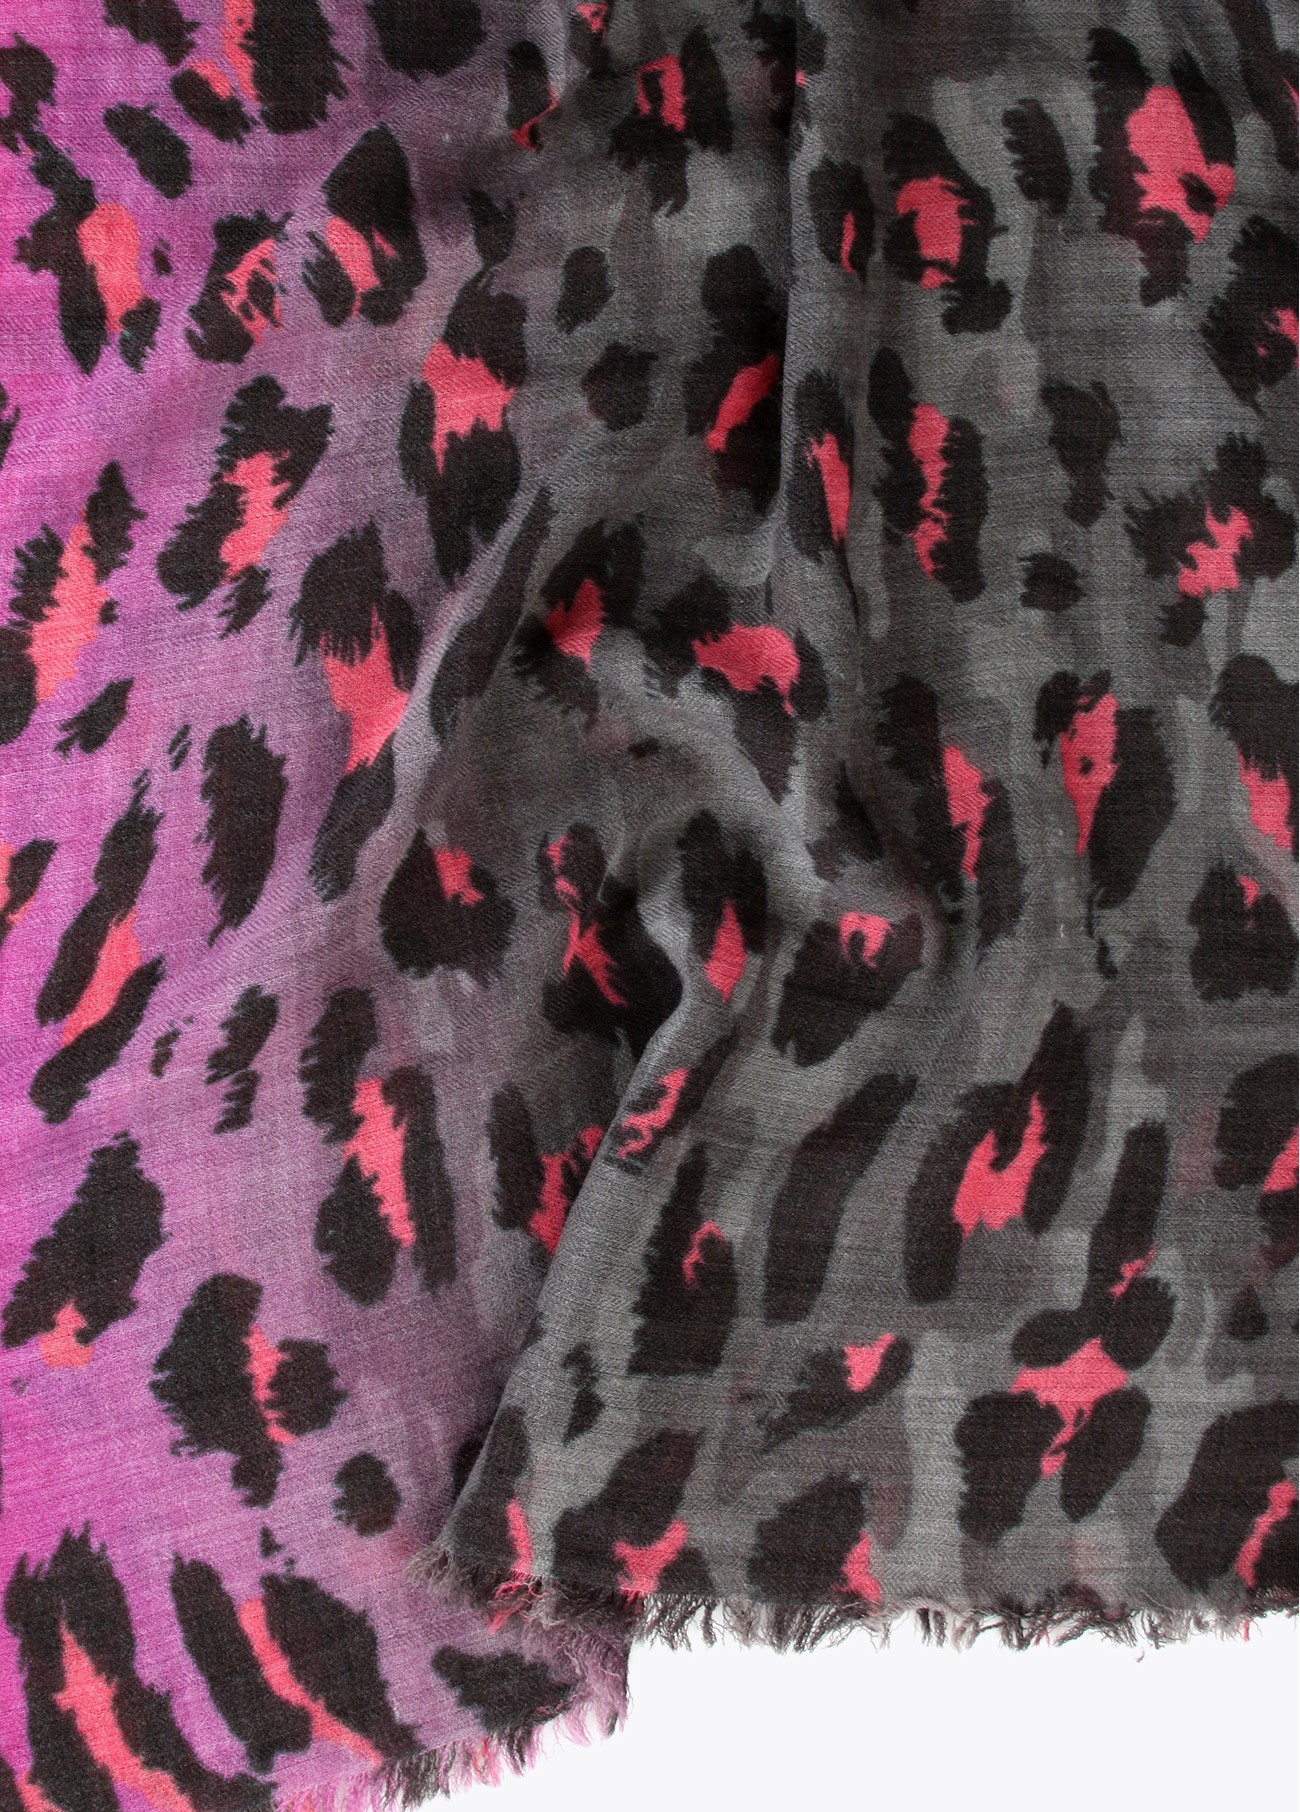 Chal leopardo degradado fucsia, estampado